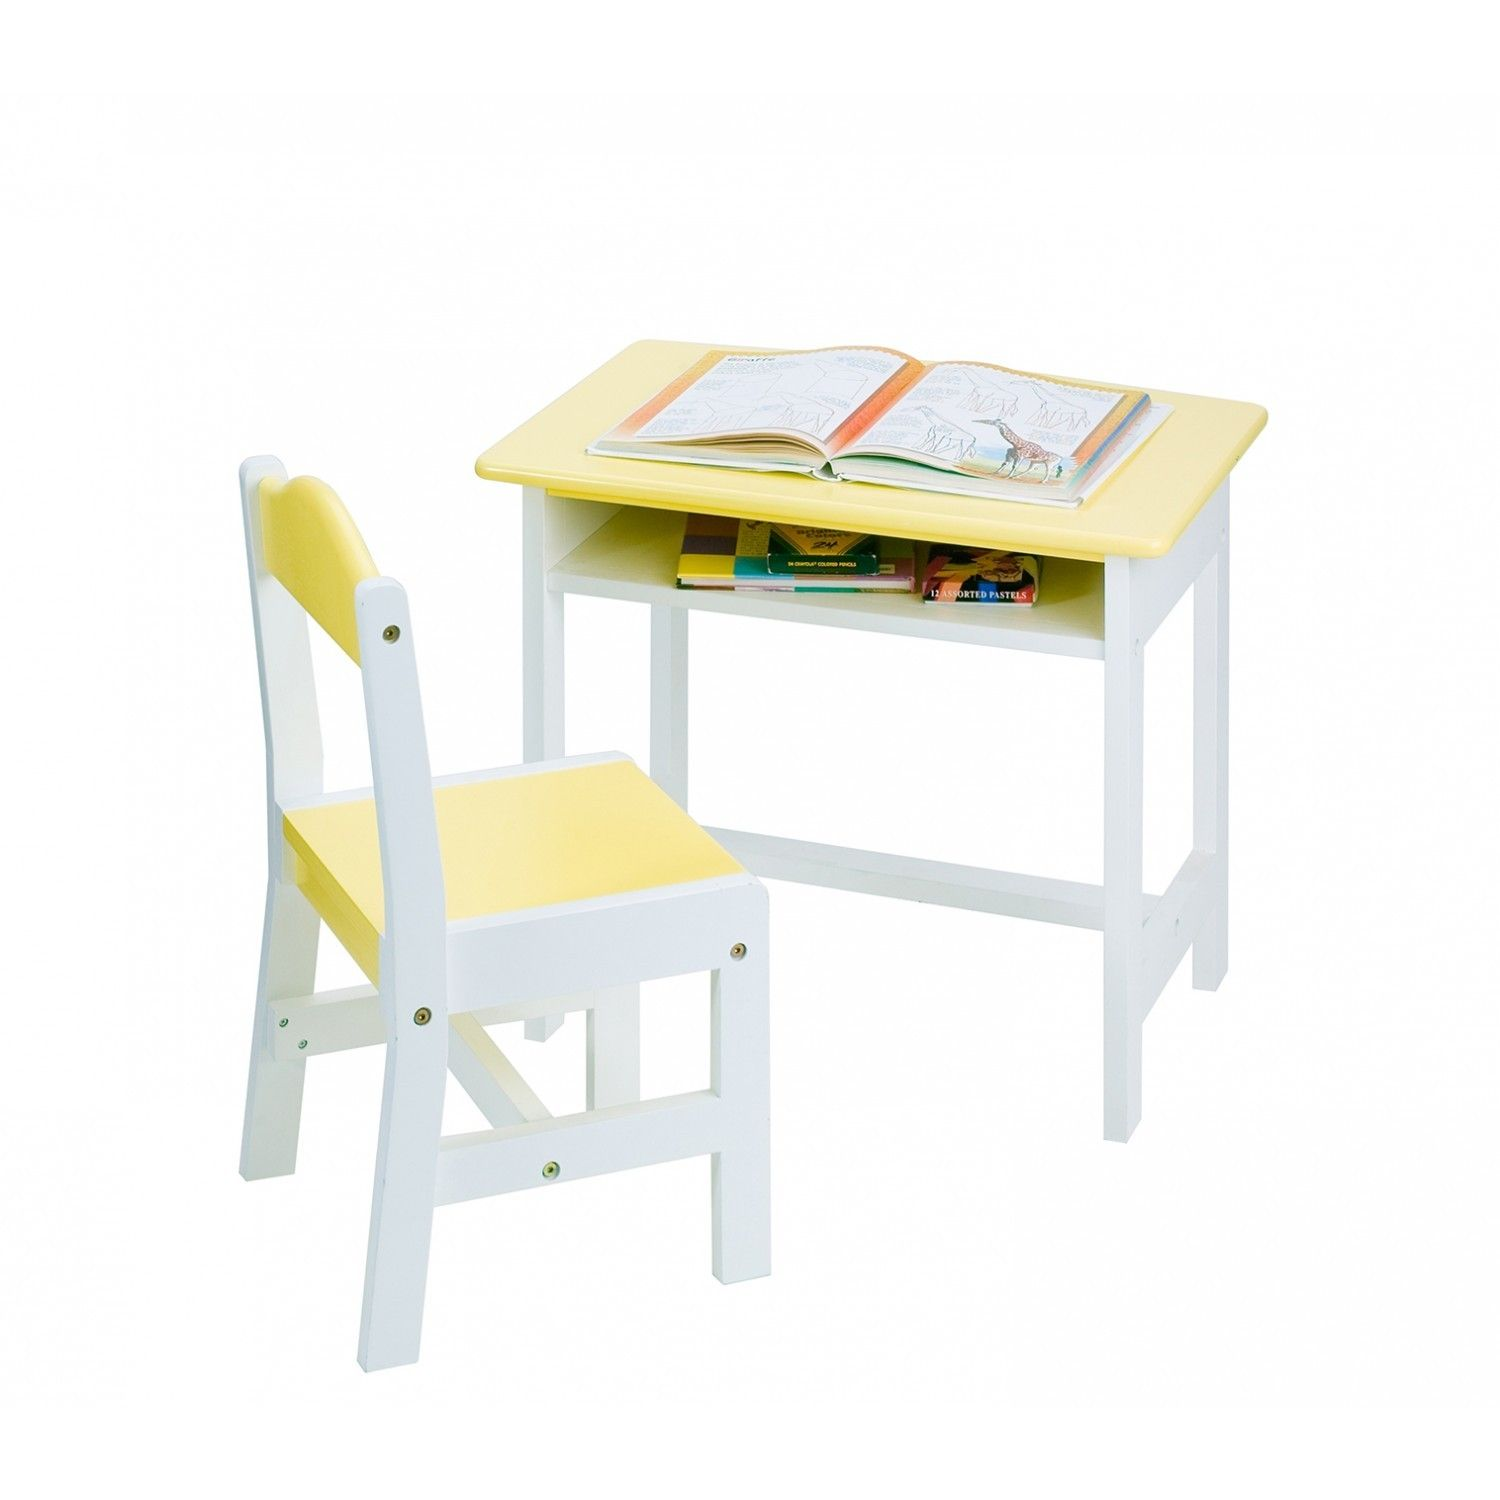 This Yellow desk study set makes homework more fun while the